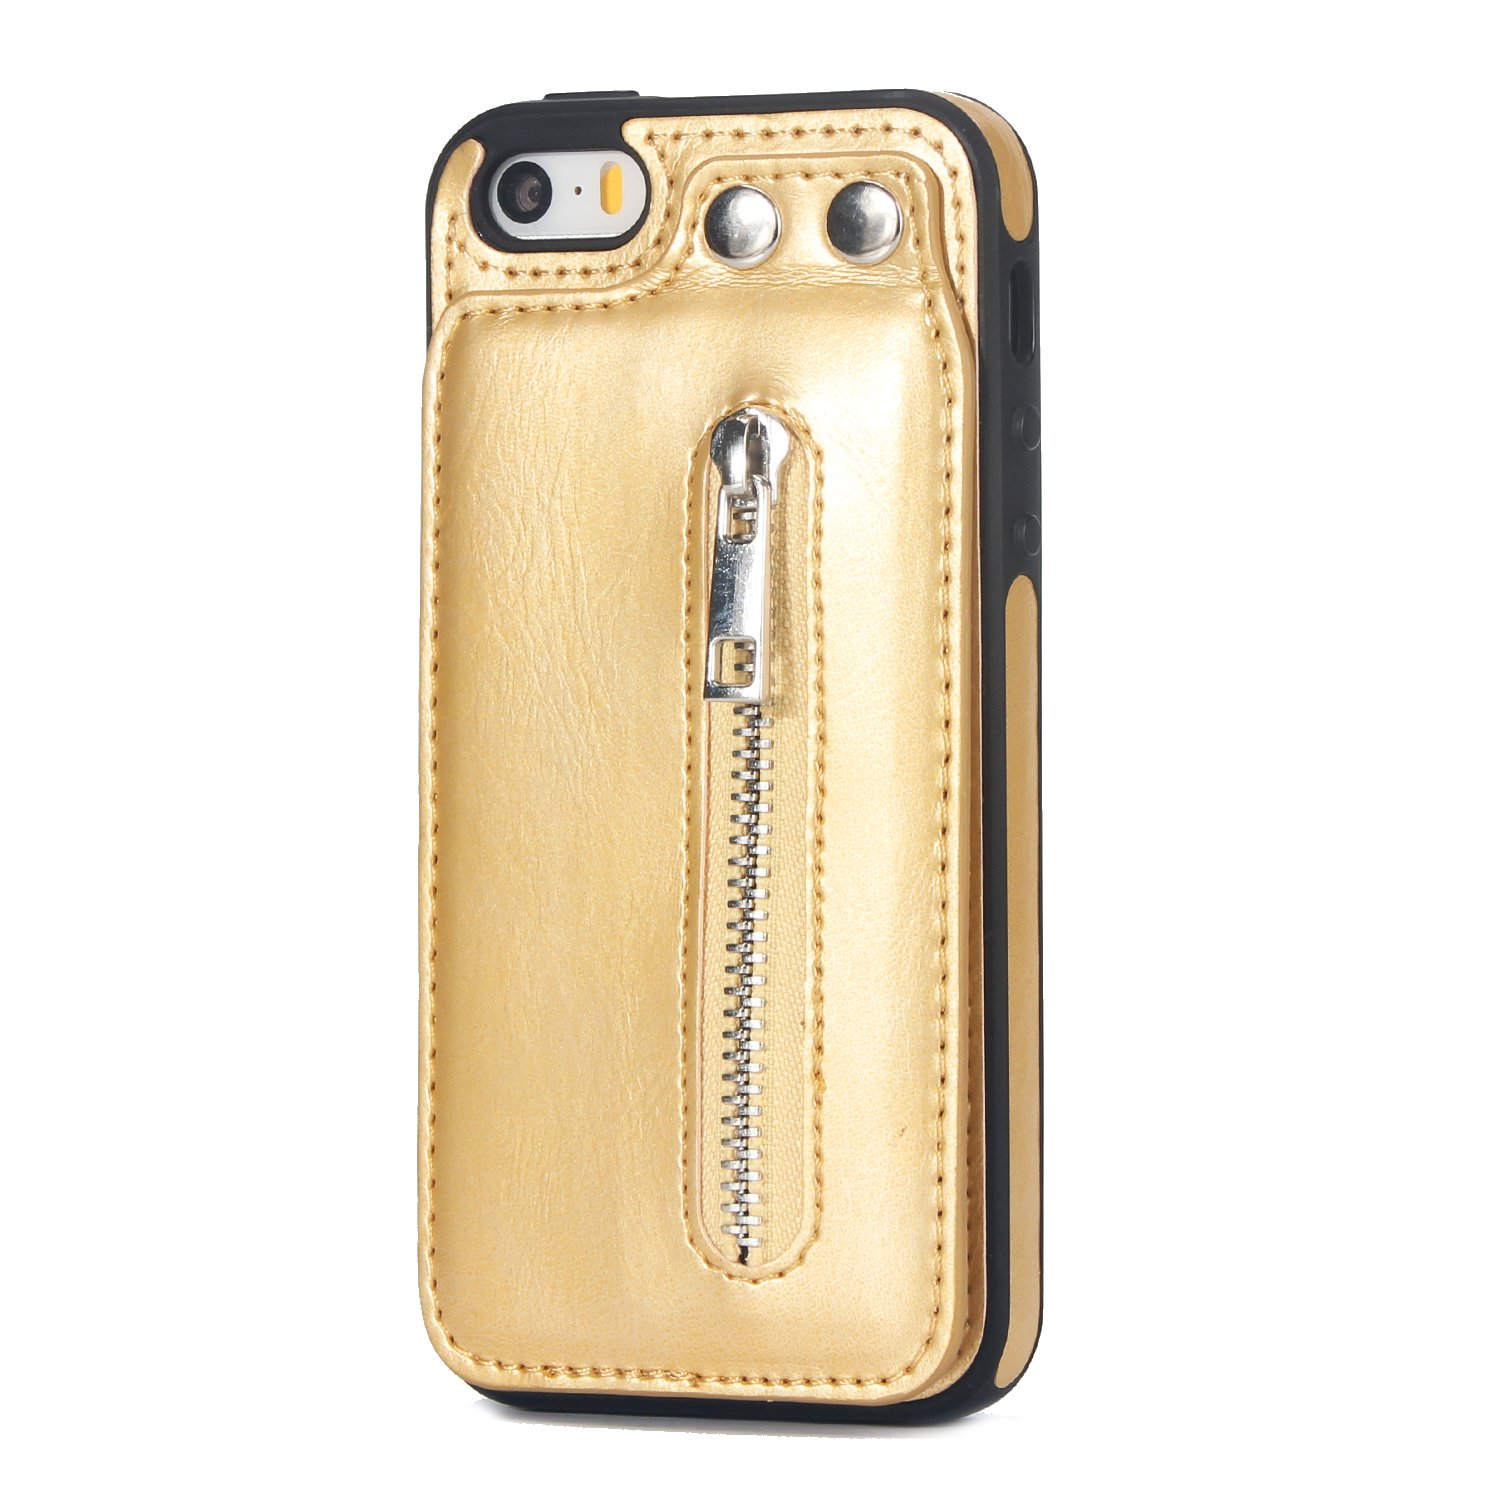 Case for iPhone 5S/iPhone SE Flip Case Premium PU Leather Wallet Cover with Card Holder Money Pocket Durable Shockproof Protective Cover for iPhone 5S/SE,Gold by ikasus